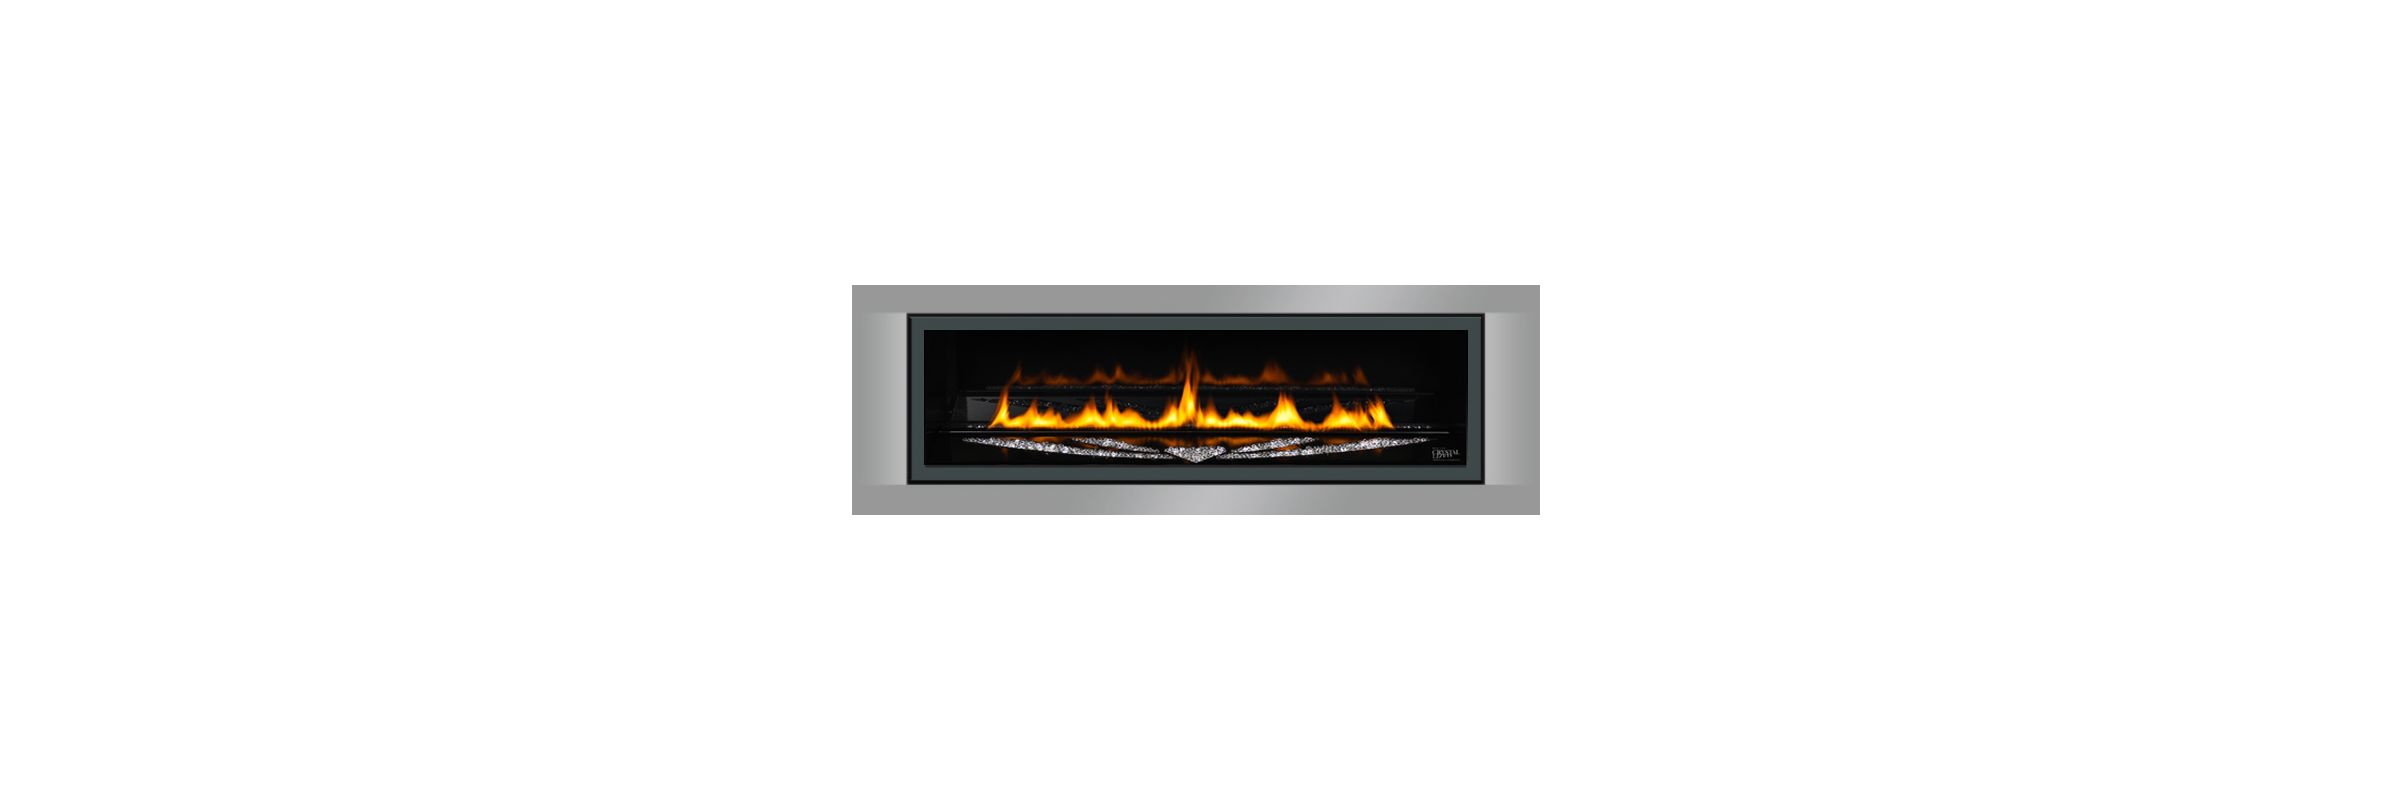 Napoleon Lhdsp50 Pewter Linear Fireplace Surround For Napoleon Lhd50ss And Lhd50 Fireplaces